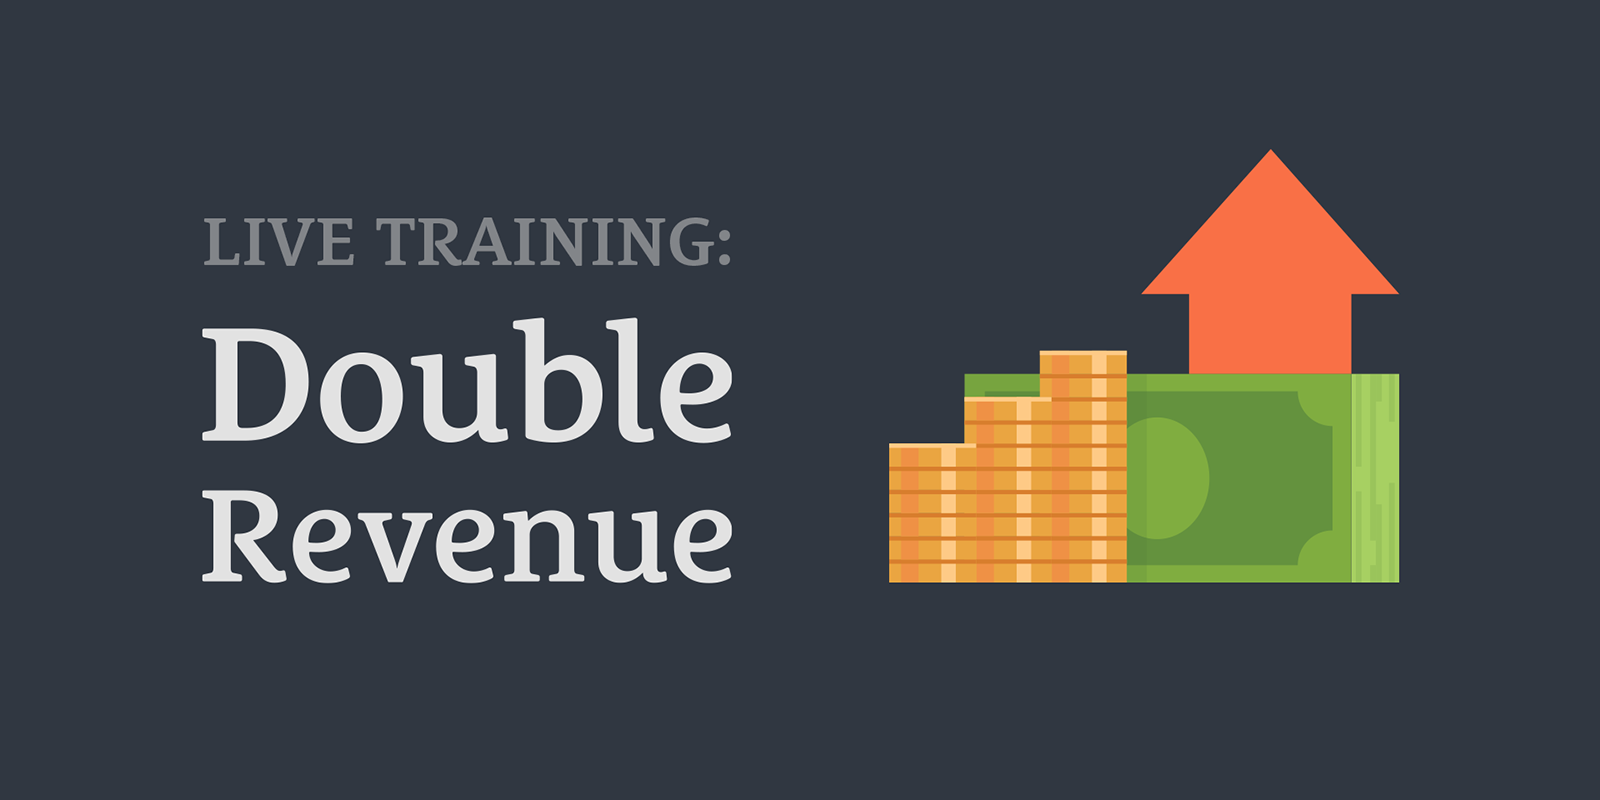 Double Revenue and Take Your Business to the Next Level